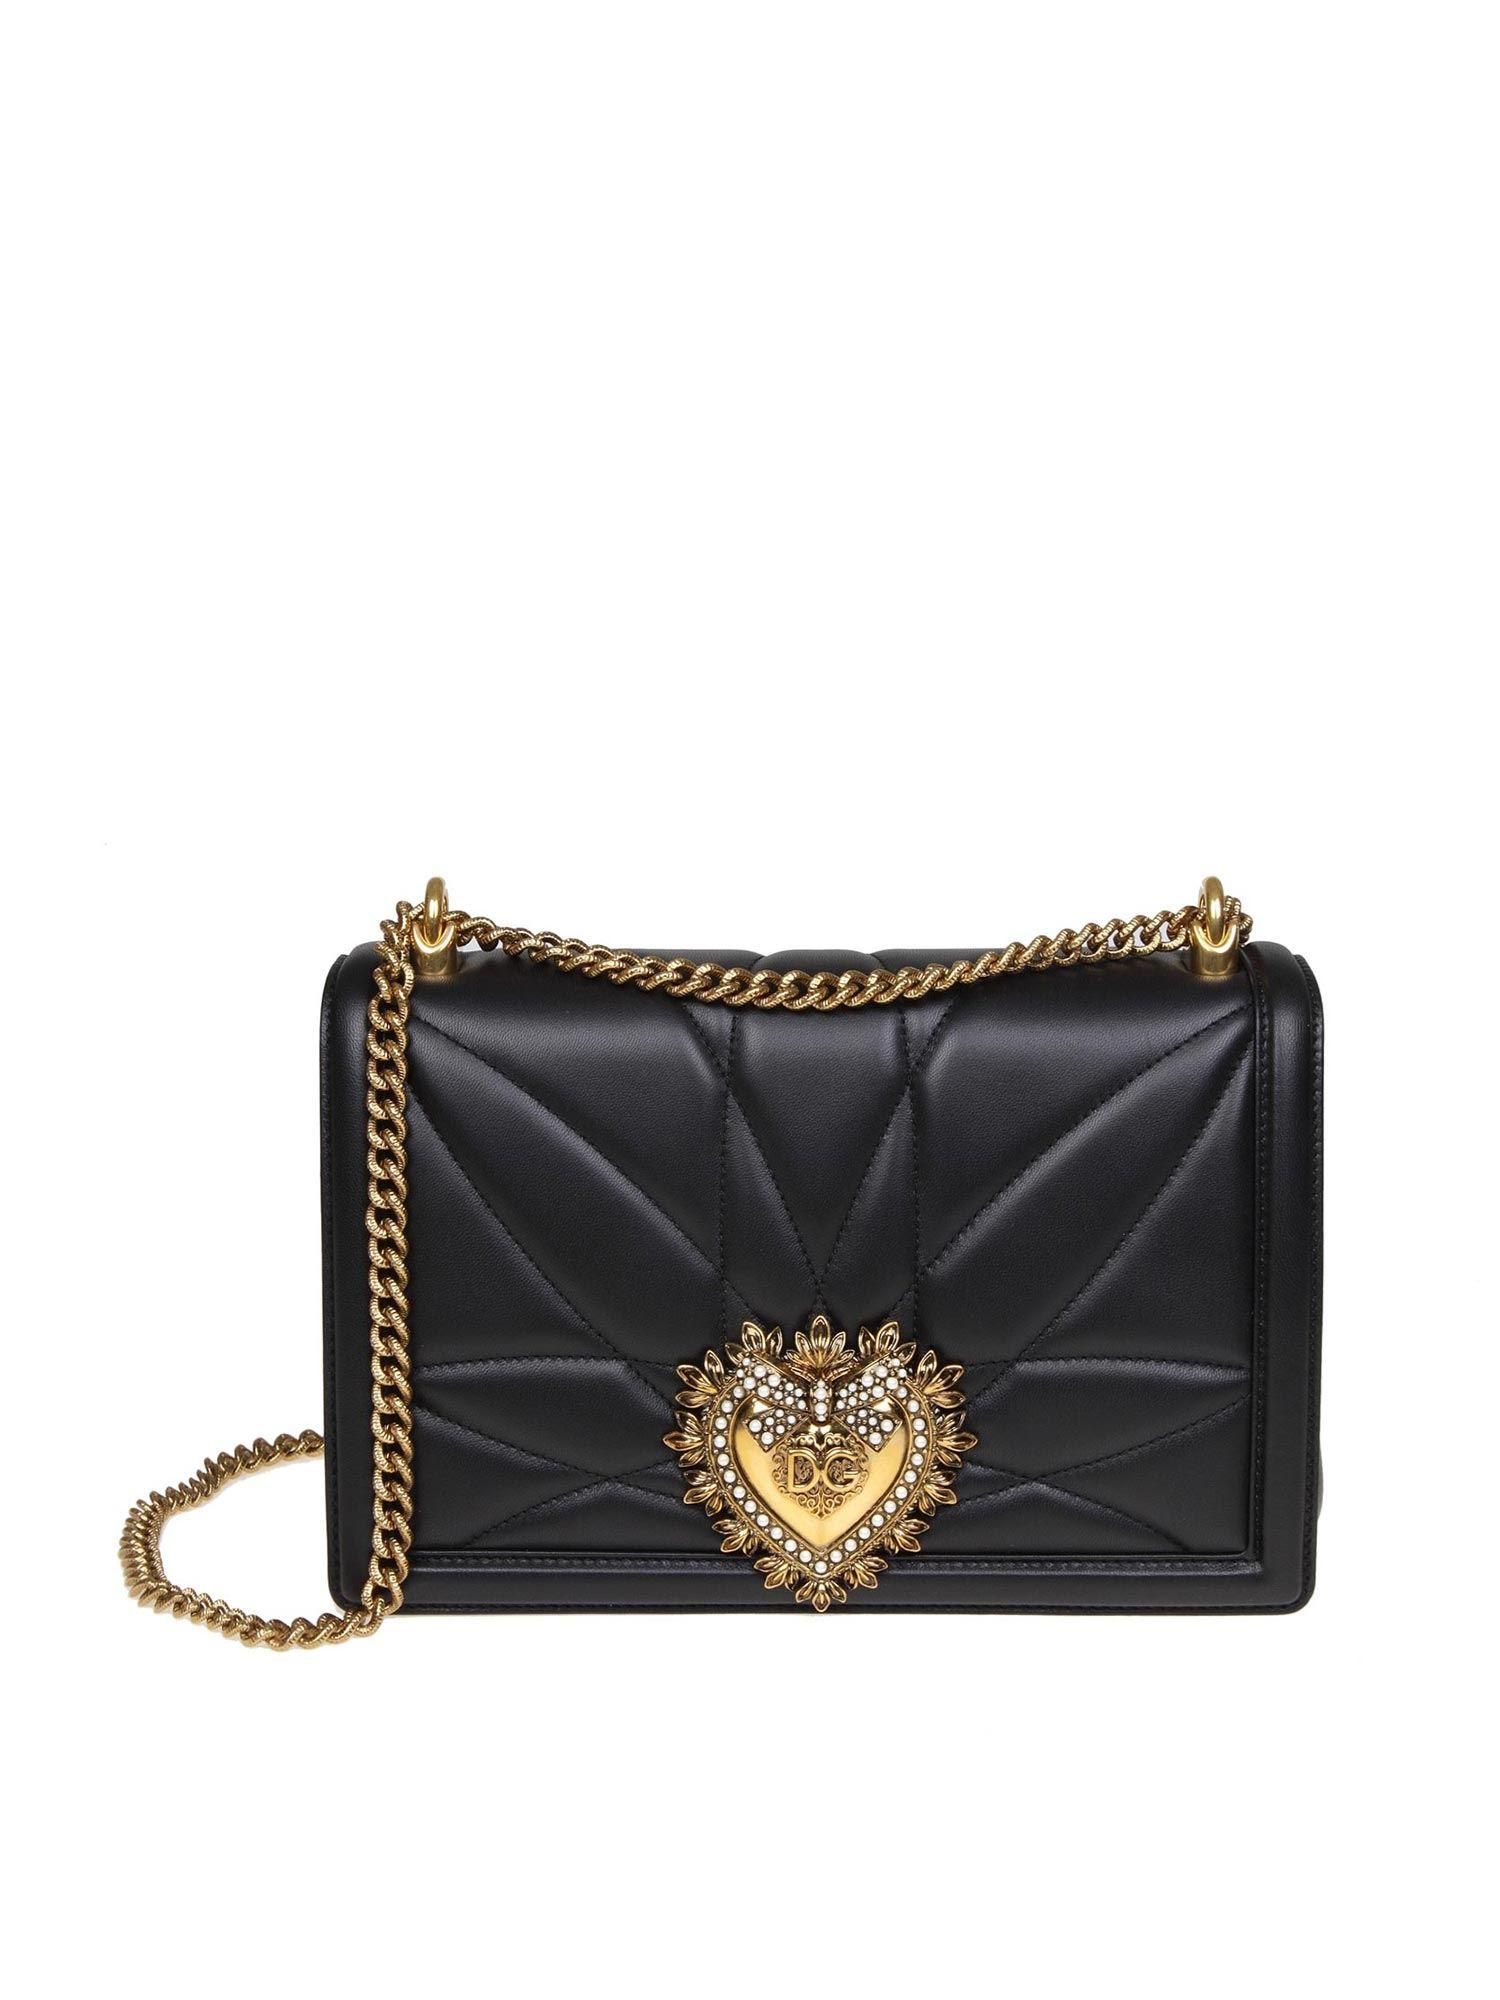 90d7652aba Dolce   Gabbana. Women s Black Large Devotion Bag In Quilted Nappa Leather